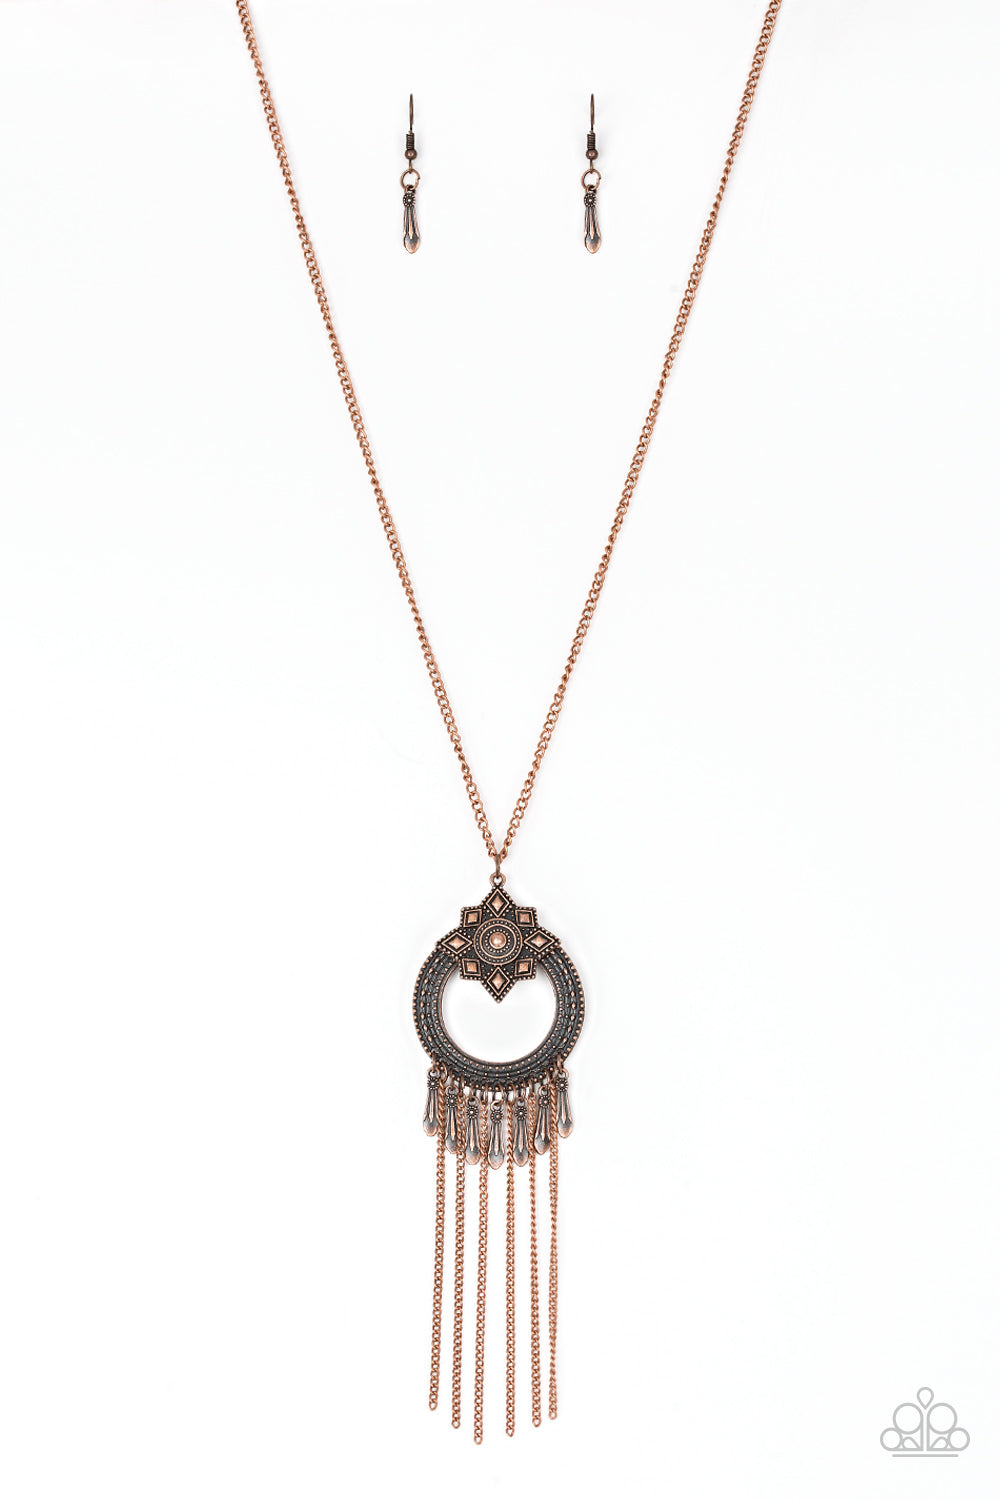 Paparazzi Accessories - Paparazzi Necklace - My Main MANTRA - Copper Necklace and Earring Set - Necklaces